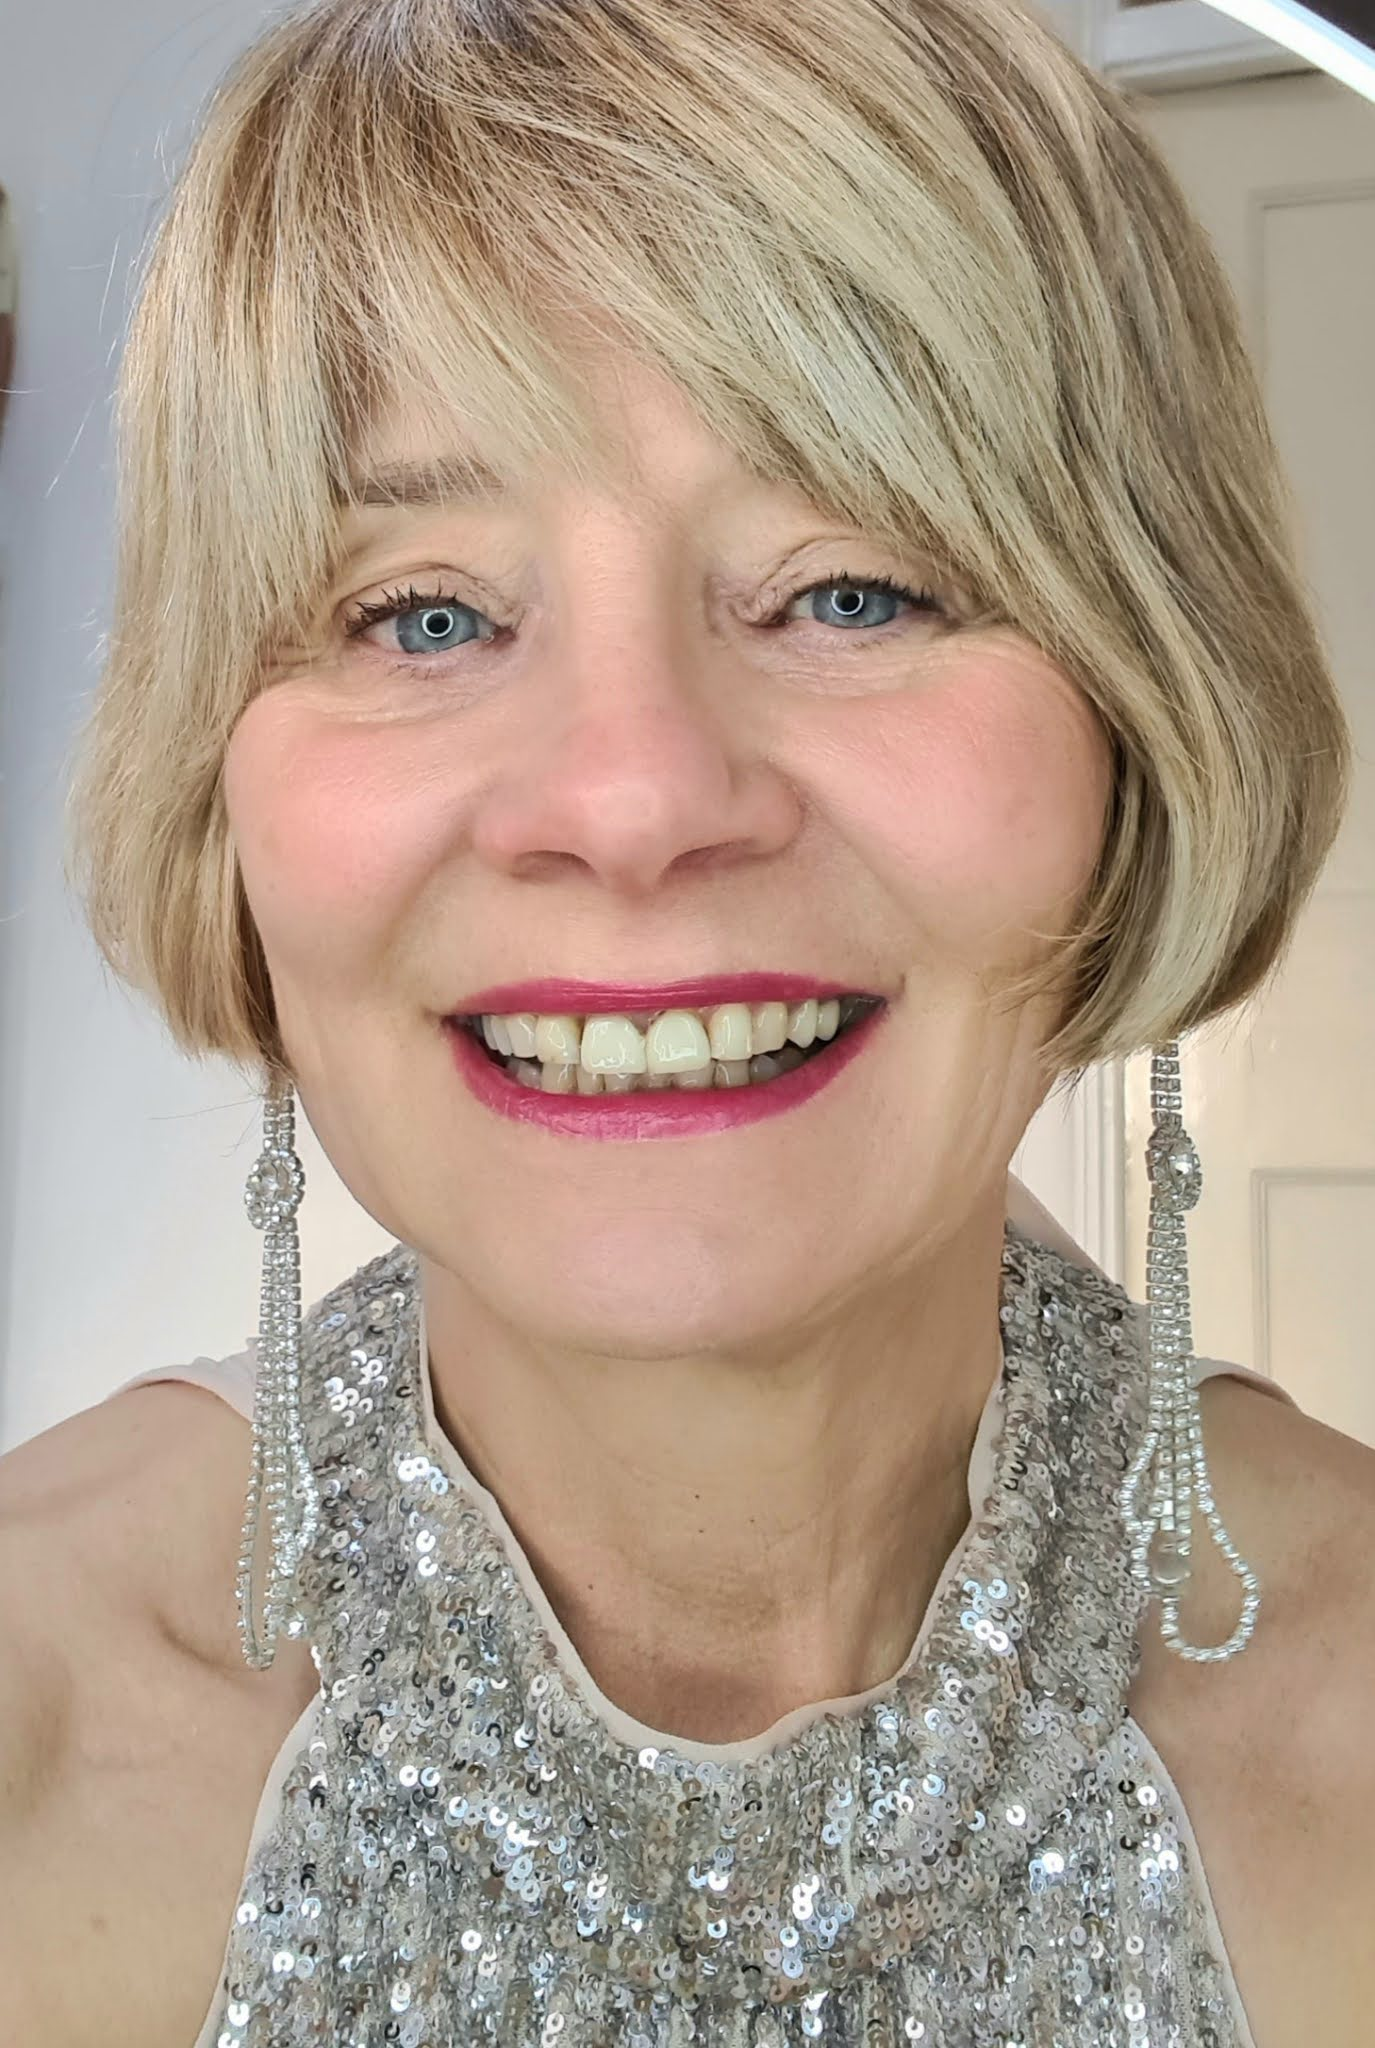 Over 60s blogger Gail Hanlon from Is This Mutton in silver sequinned top